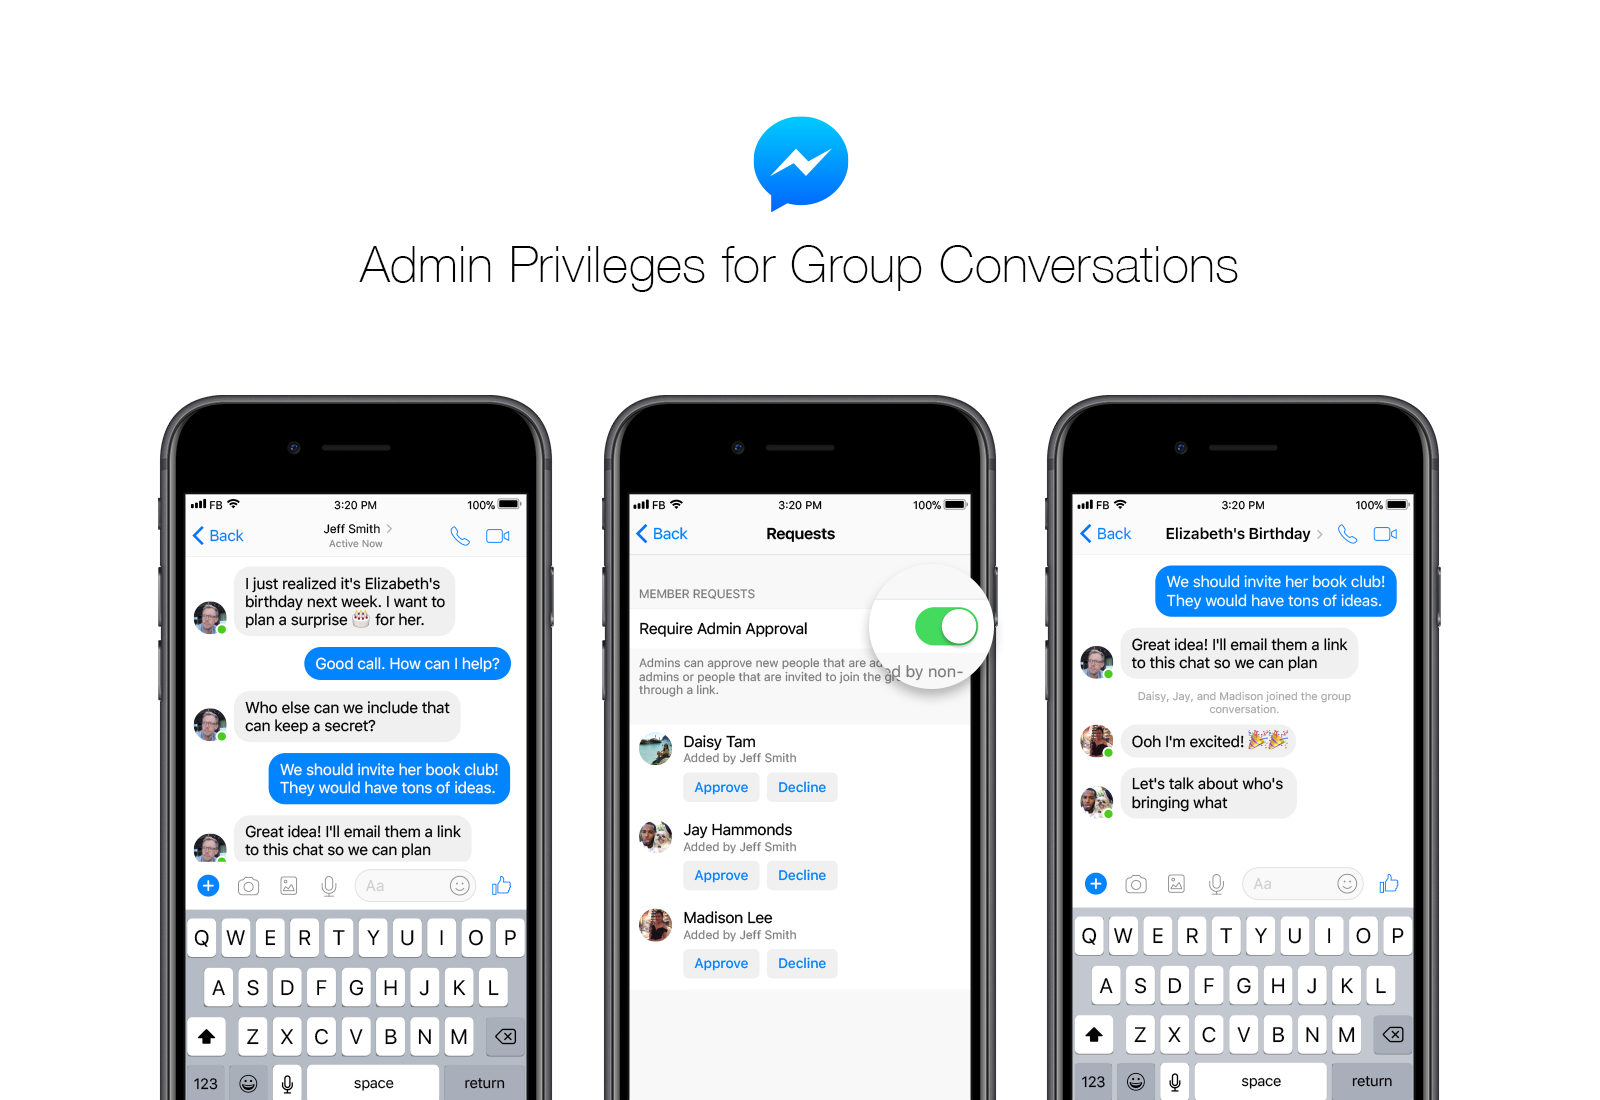 Facebook Messenger adds support for admin privileges